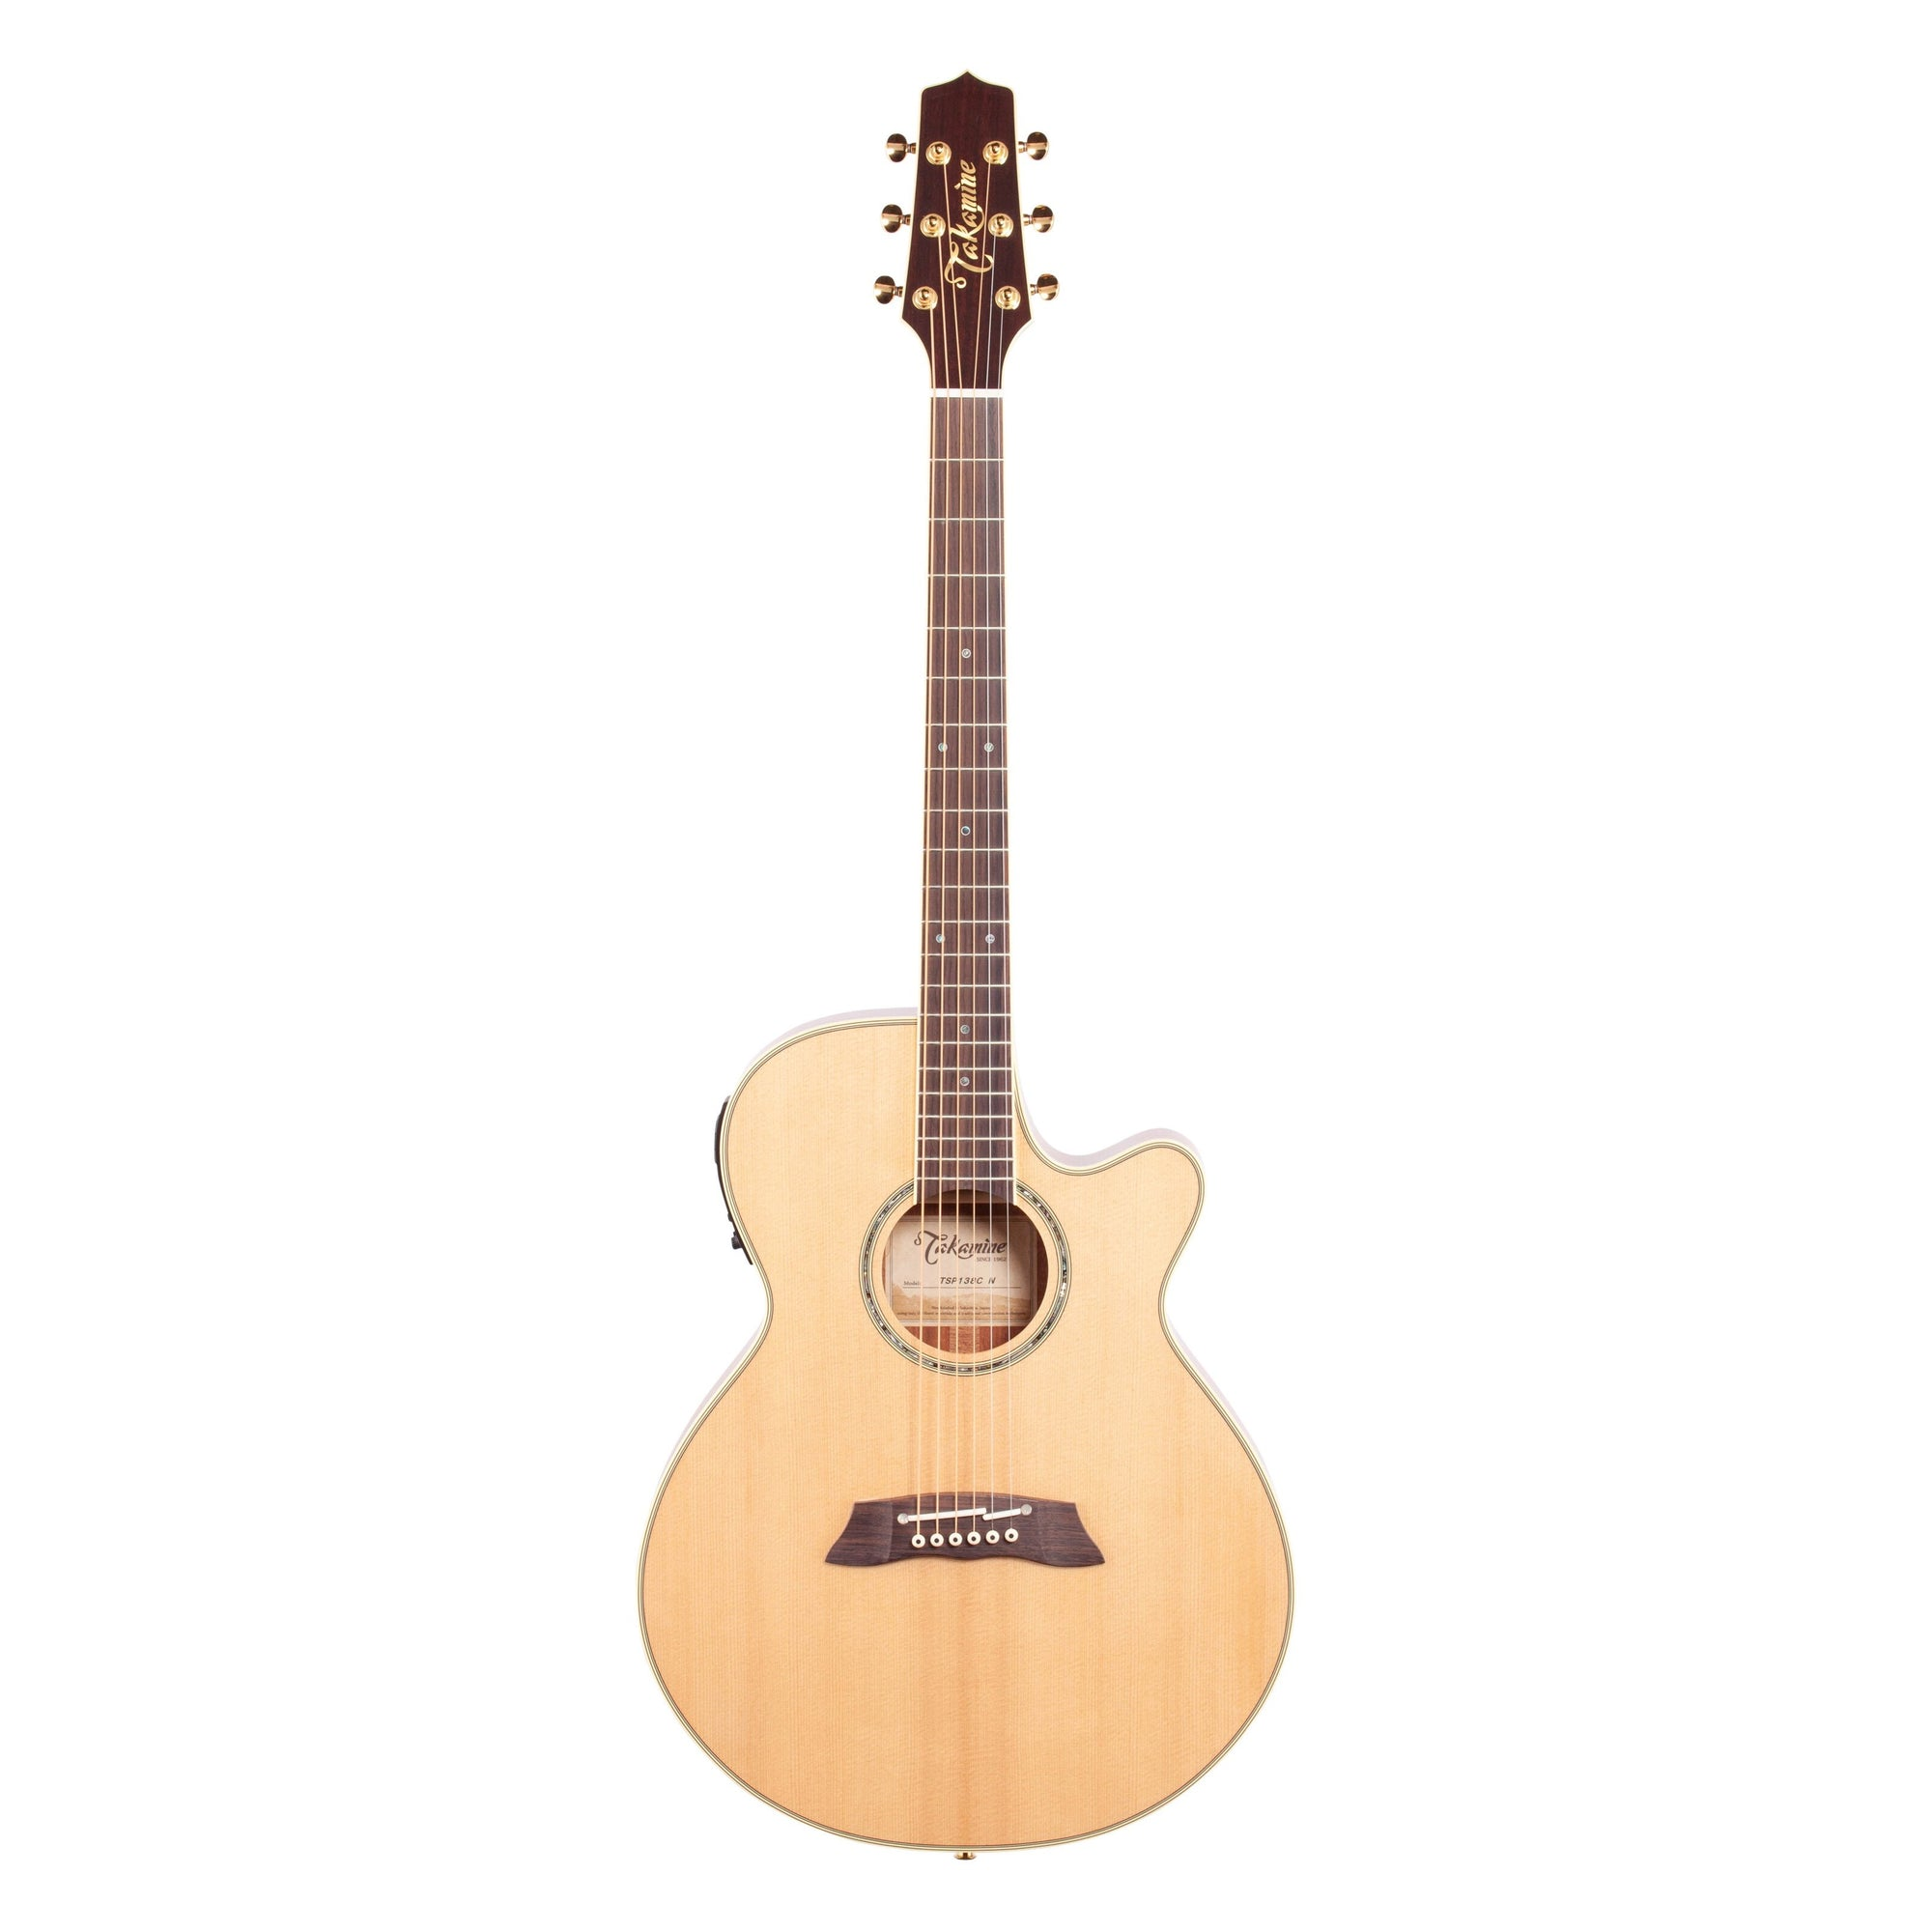 Takamine TSP138C Thinline Acoustic-Electric Guitar (with Gig Bag), Natural